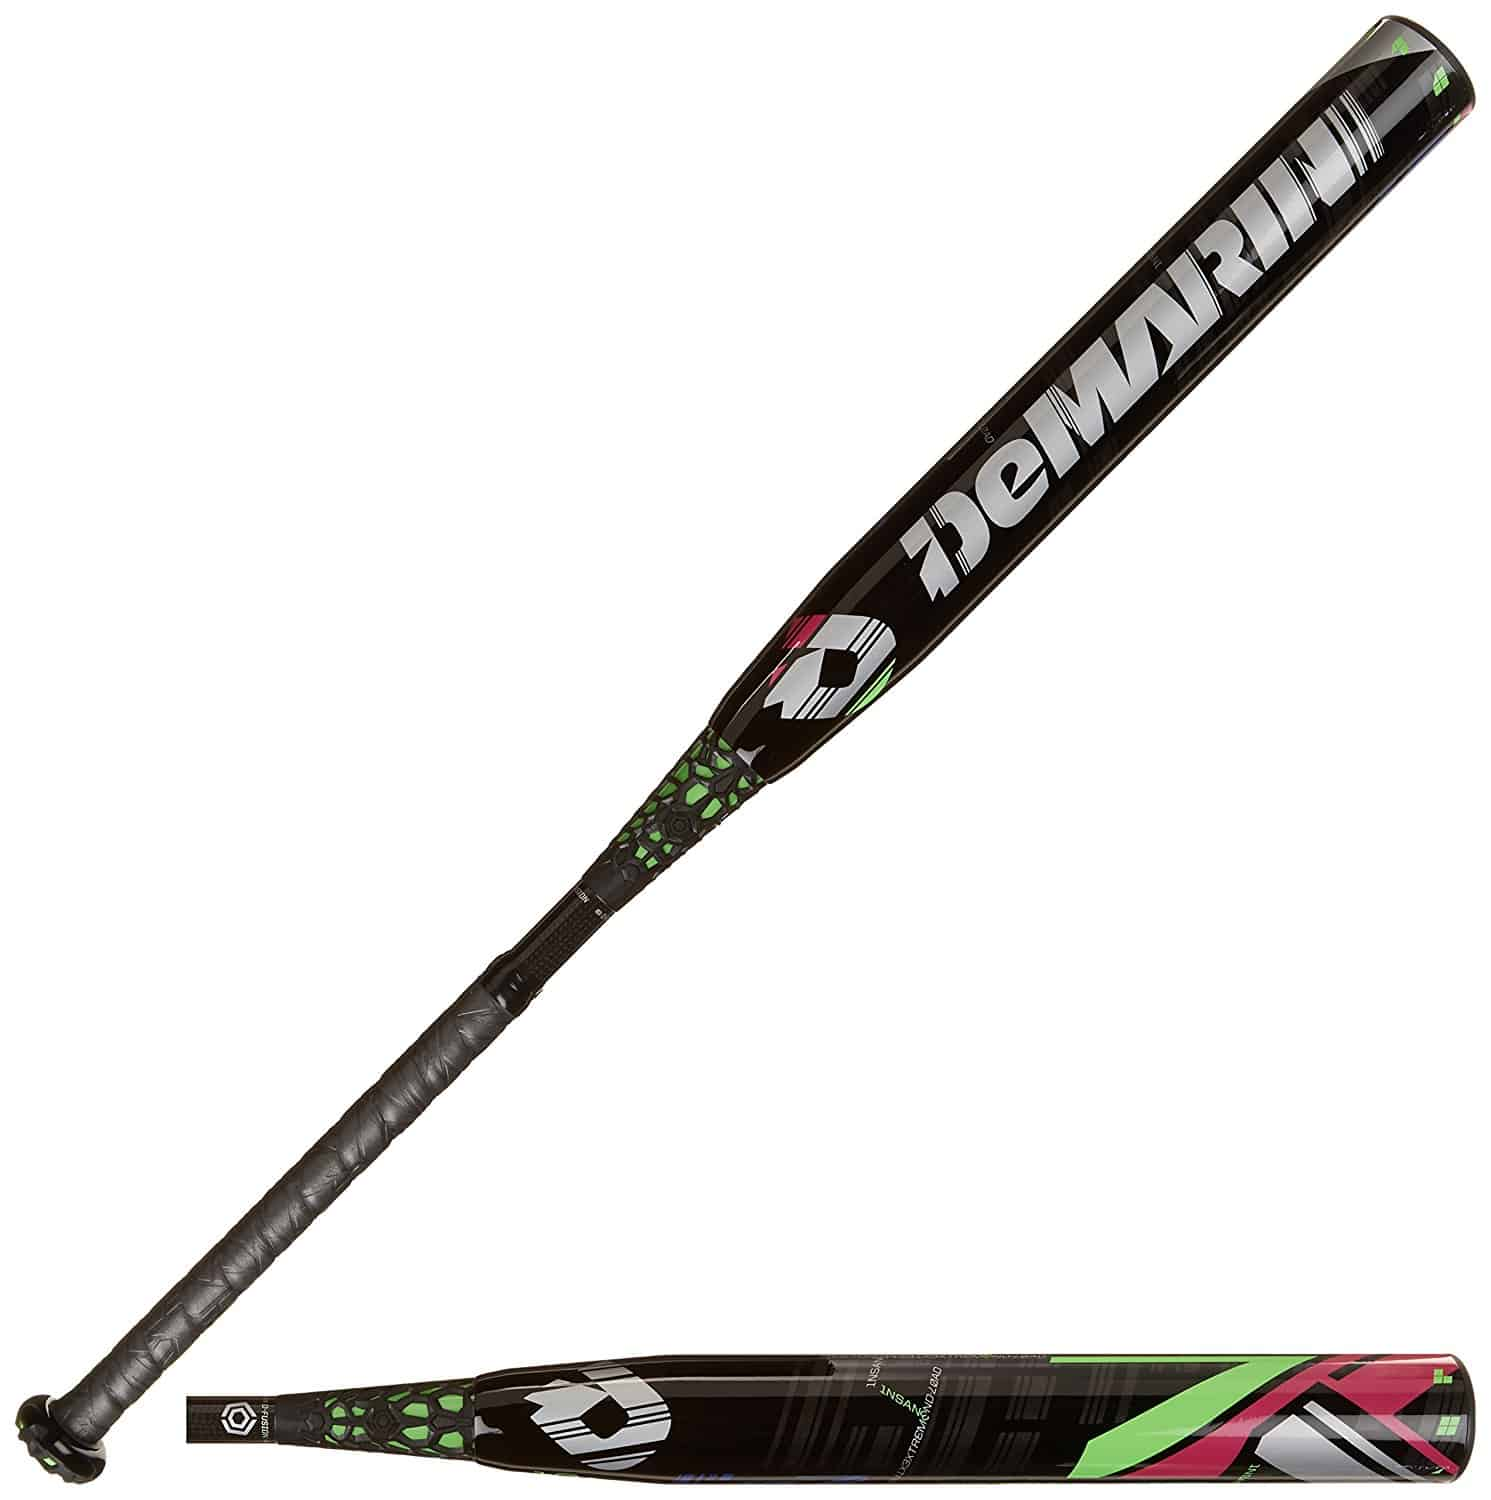 DeMarini CF7 Review – An Unmatched Youth Bat